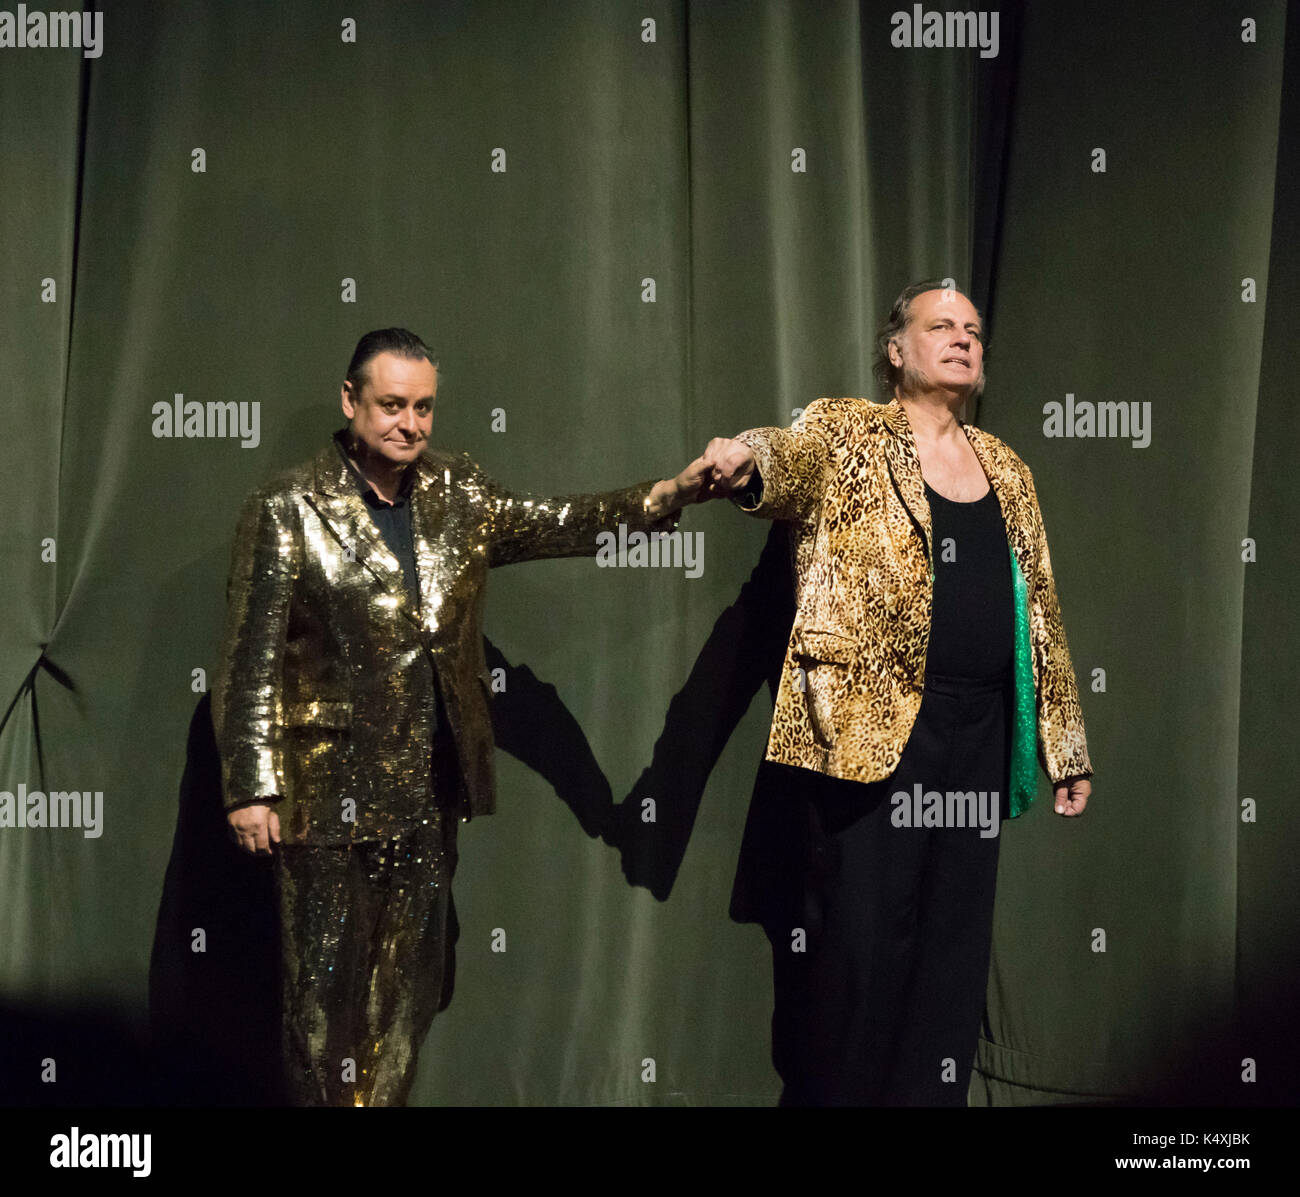 Andreas Conrad (left) as Mime and Albert Dohmen, Alberich, taking a curtain call at Wagner's Rheingold, Bayreuth Opera Festival 2017, Bavaria, Germany - Stock Image